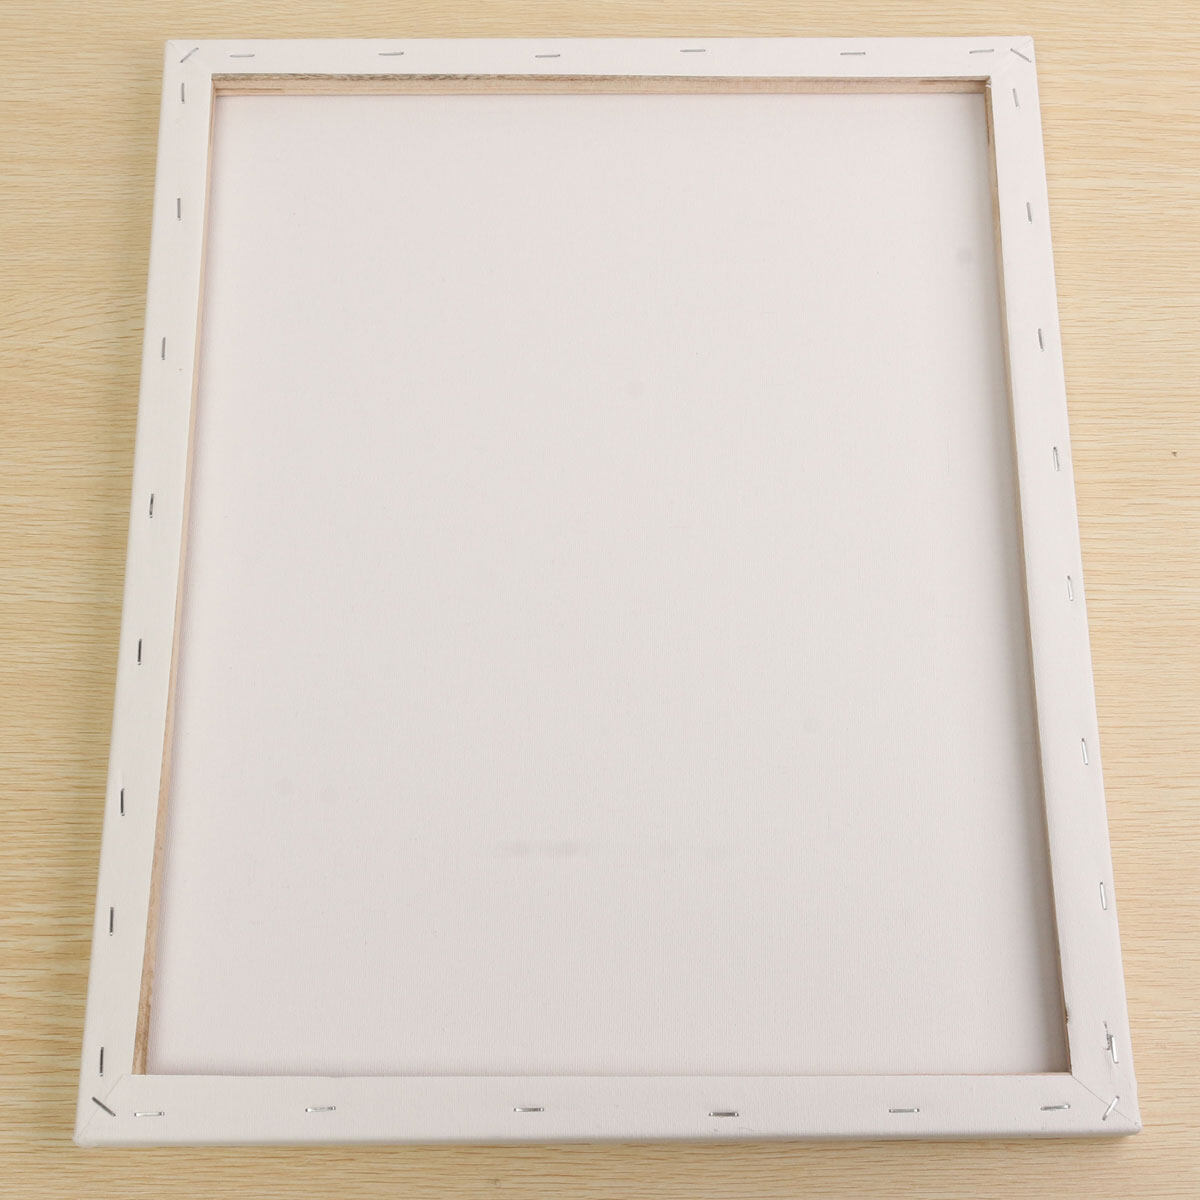 Jual Kanvas Lukis Kosong 30x40 Cm White Blank Square Canvas Board Wooden Frame For Art Artist Oil Acrylic Paints 40x50cm